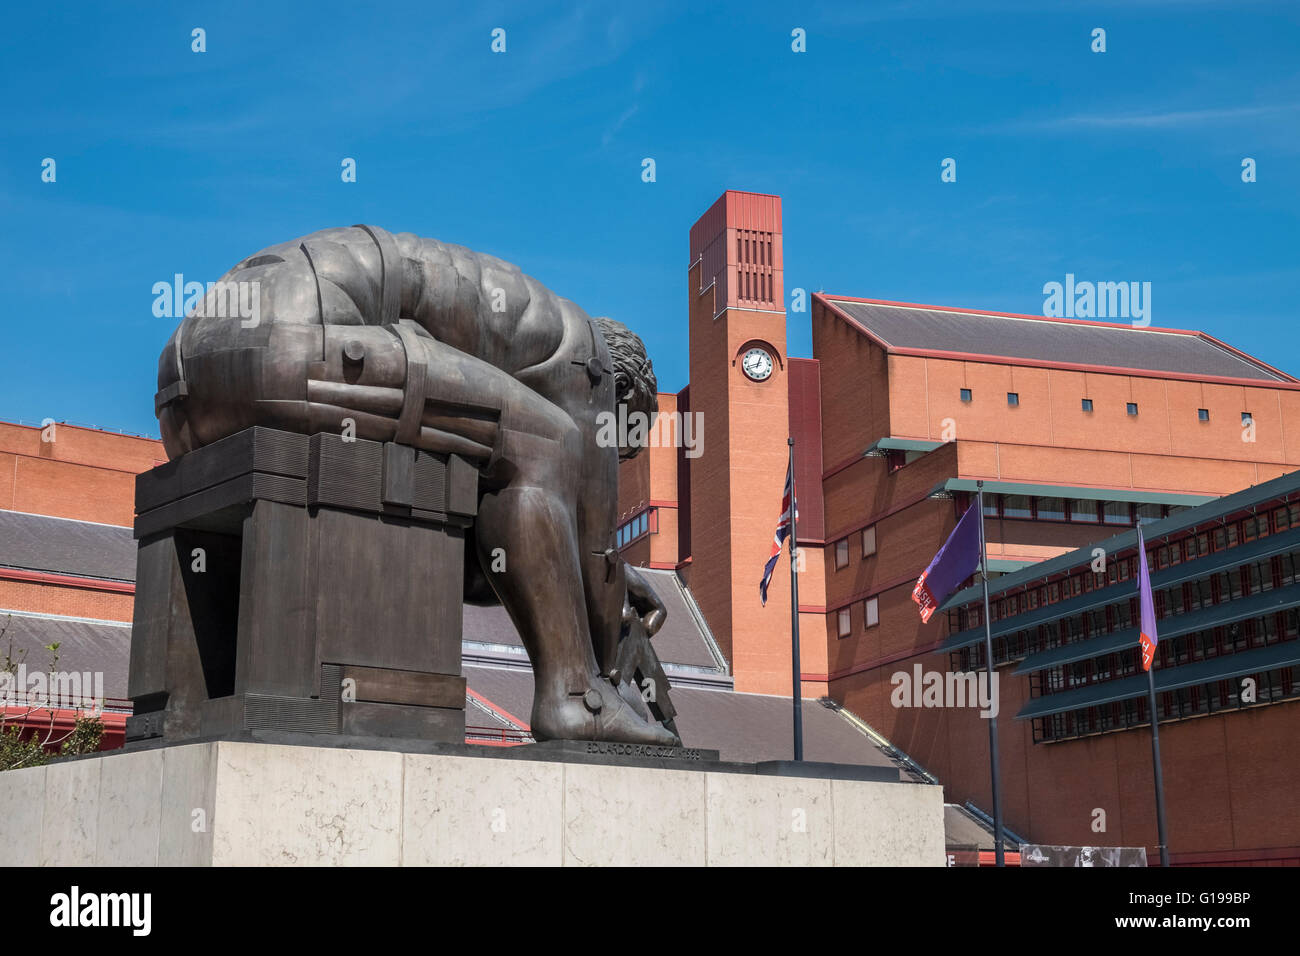 Bronze sculpture (Newton, by Eduardo Paolozzi) in the grounds of the British Library, Euston Road, London, England - Stock Image